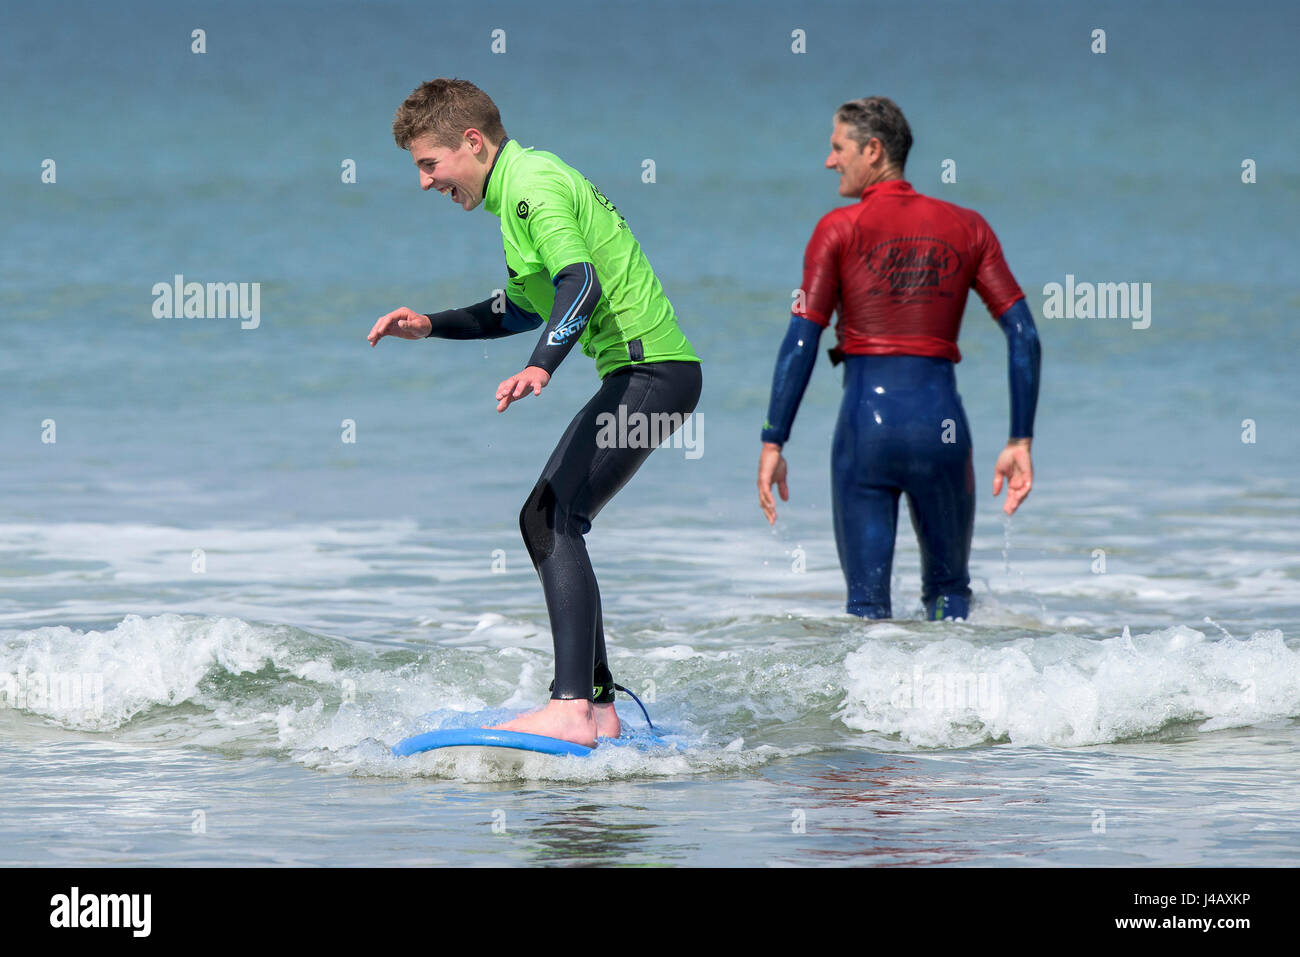 A novice learning to surf on Fistral Beach in Newquay Cornwall Escape Surf school Surfing Surfers Learners Learning - Stock Image